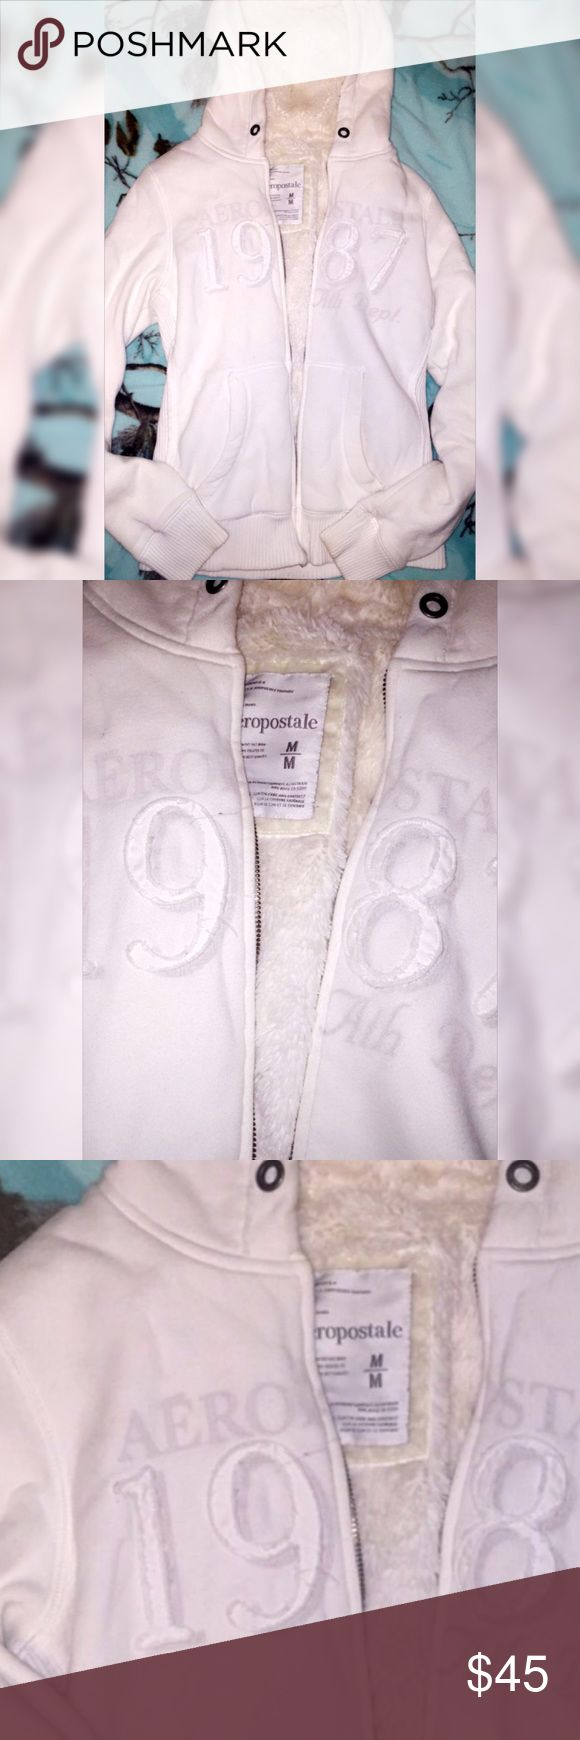 Aeropostale zip up hoodie with faux fur Cream zip up hoodie with faux fur in the inside, brand Aeropostale, size medium , in great condition , stain free Tops Sweatshirts & Hoodies